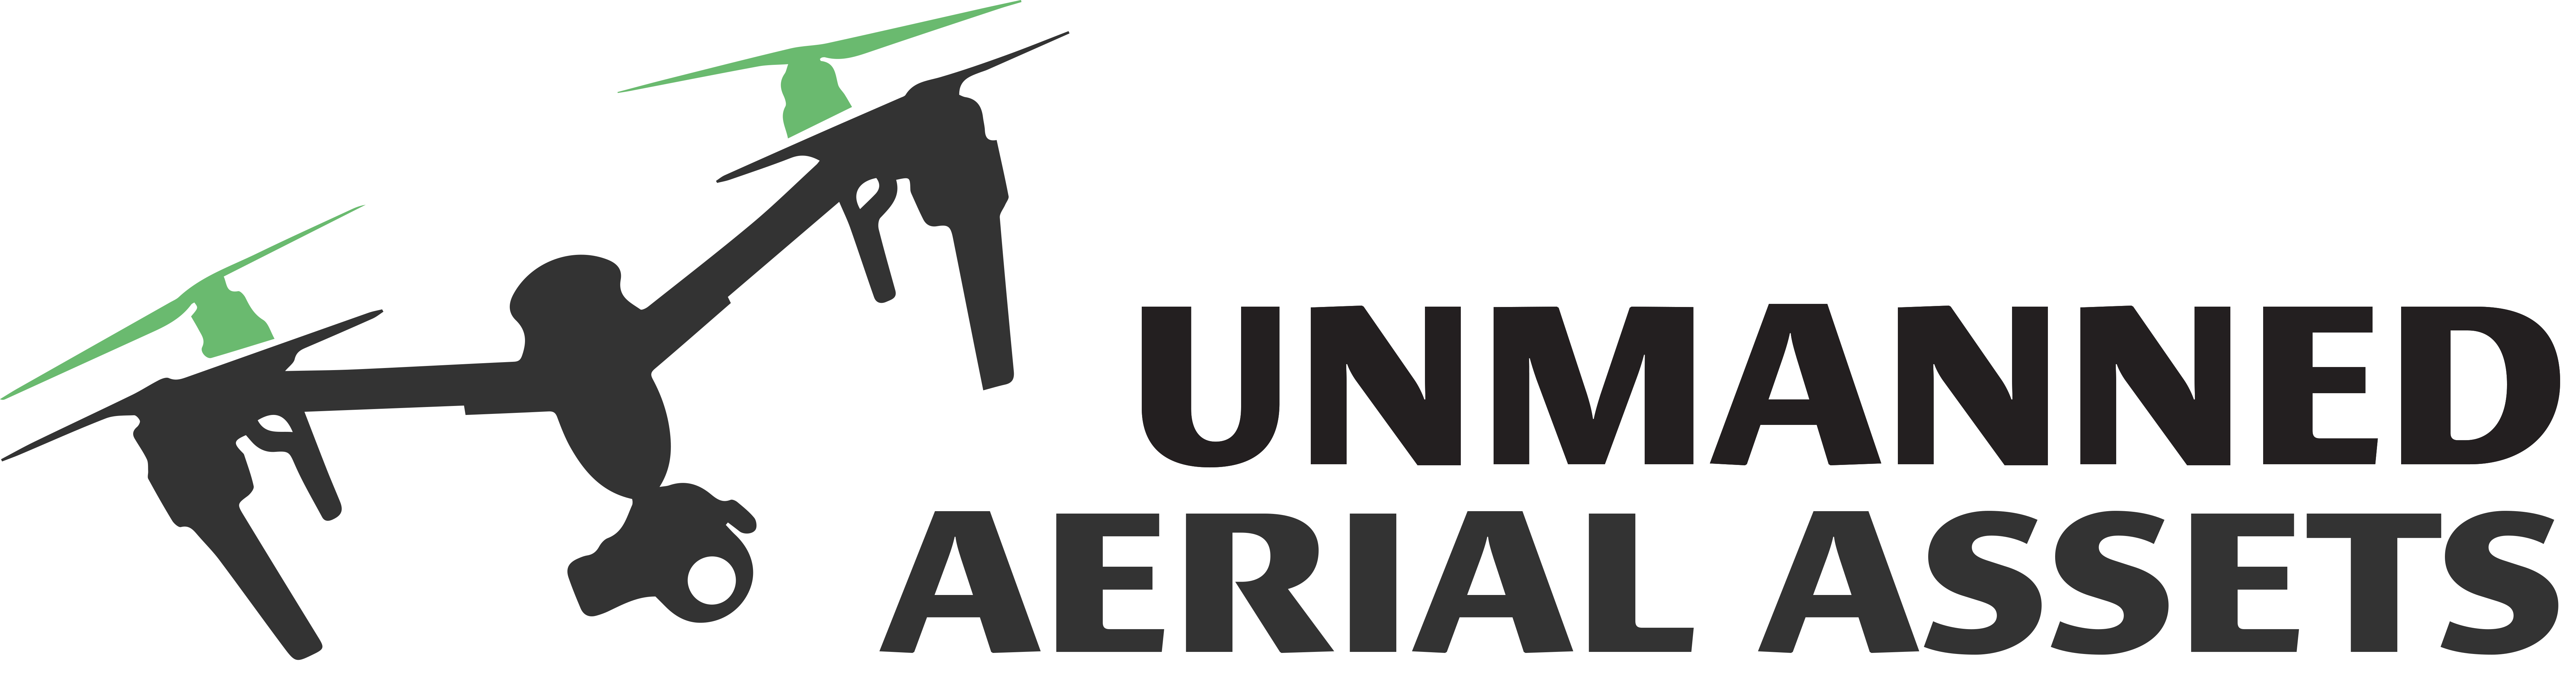 Unmanned Aerial Assets